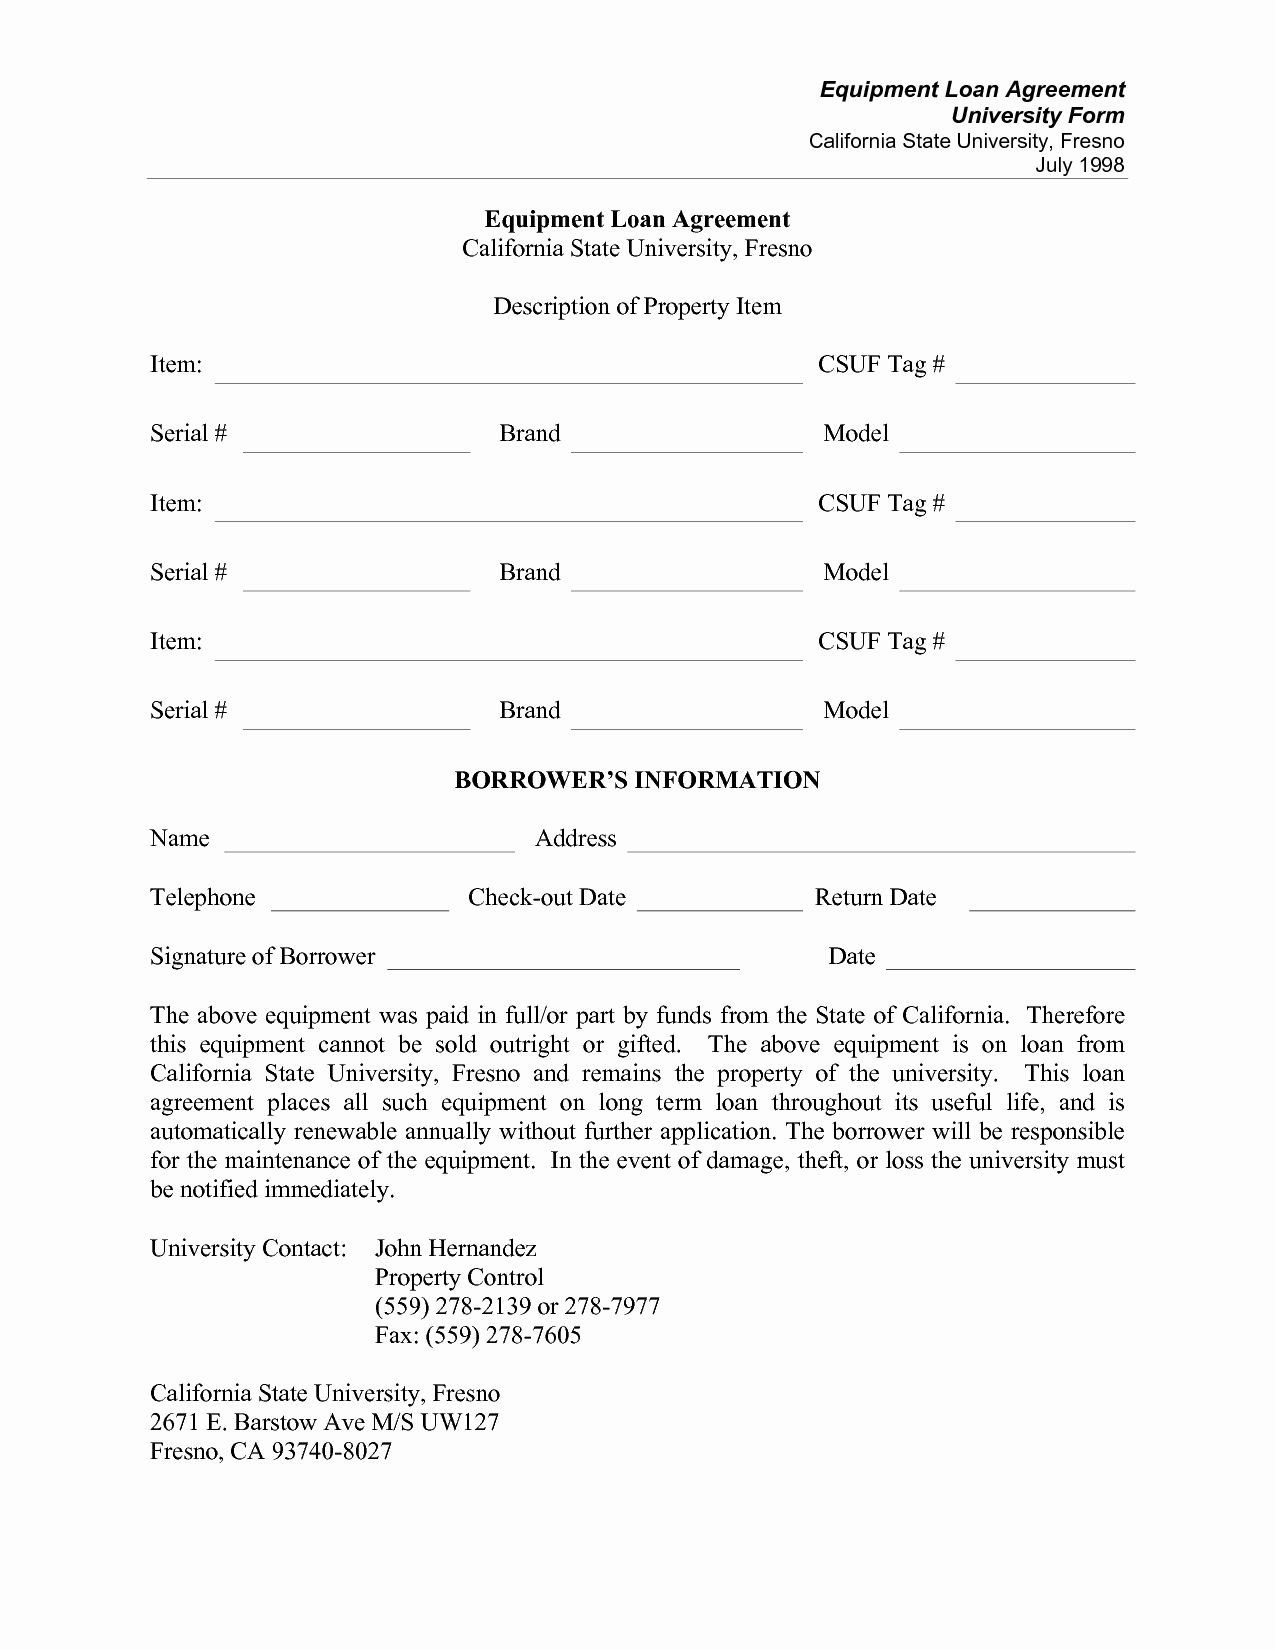 Equipment Loan Agreement Template Luxury Equipment Agreement form Employee